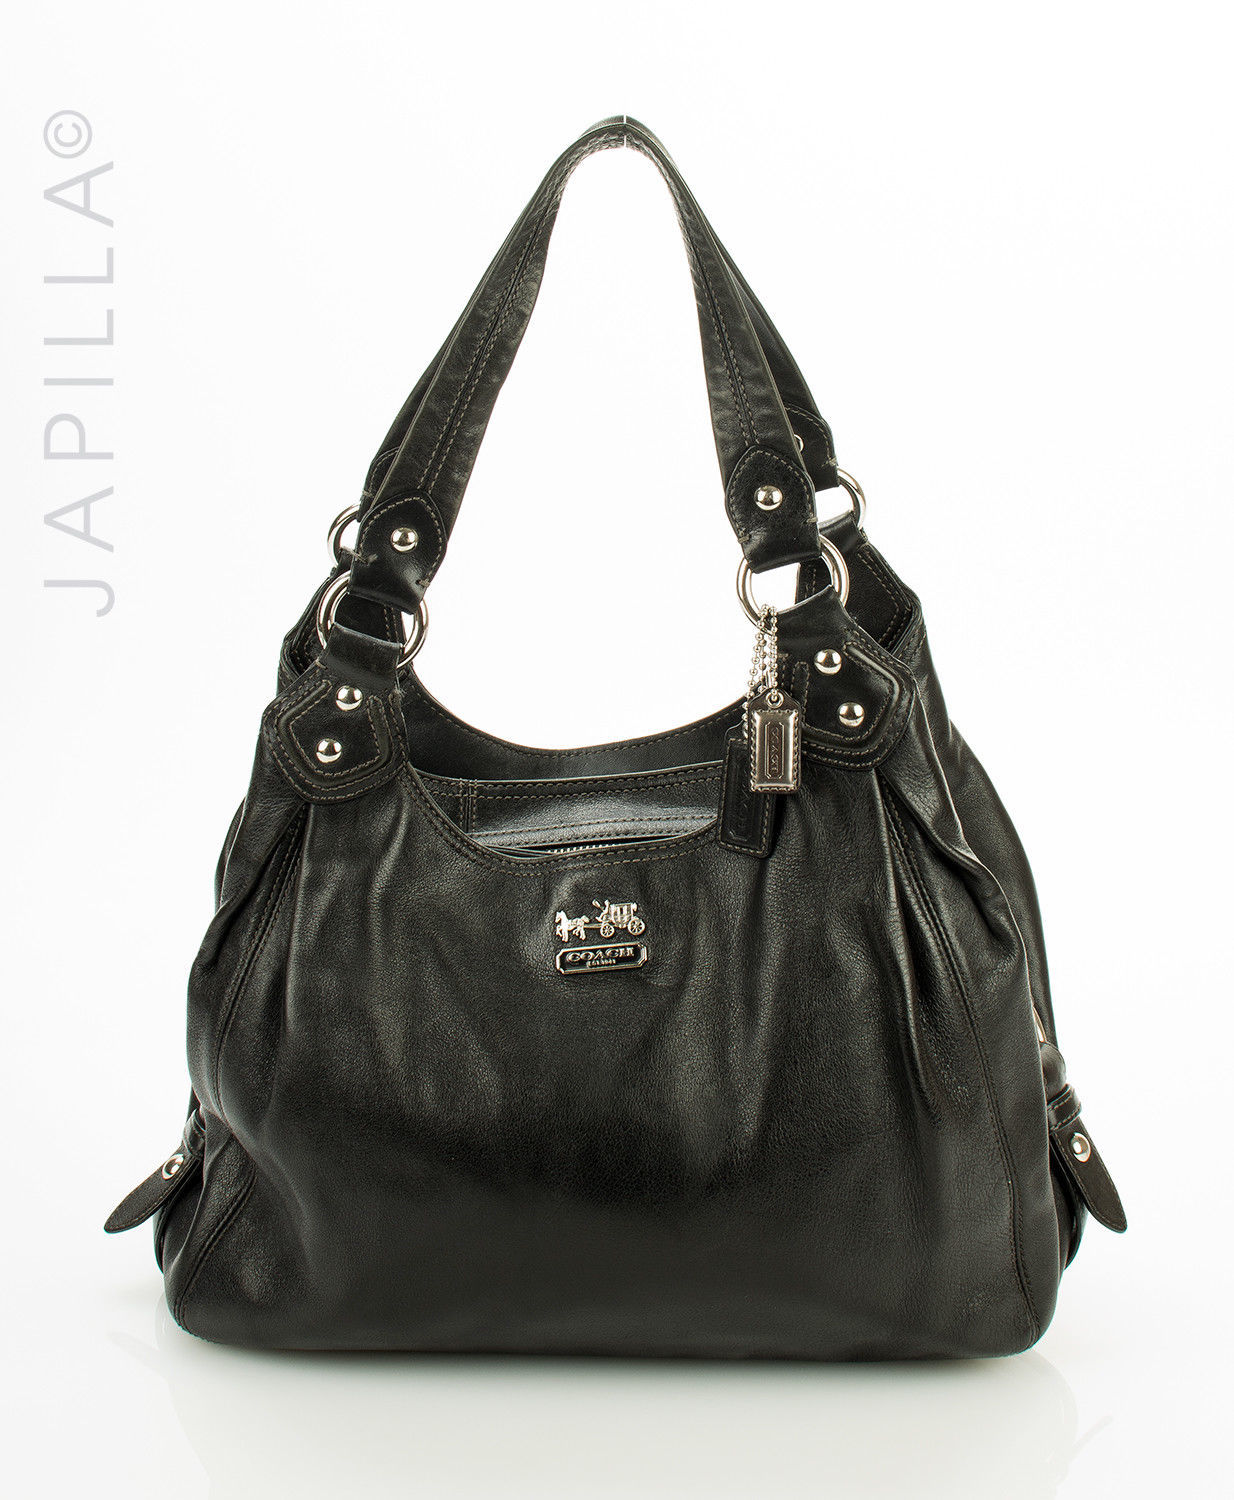 Coach Madison Bag 1 Customer Review And 43 Listings